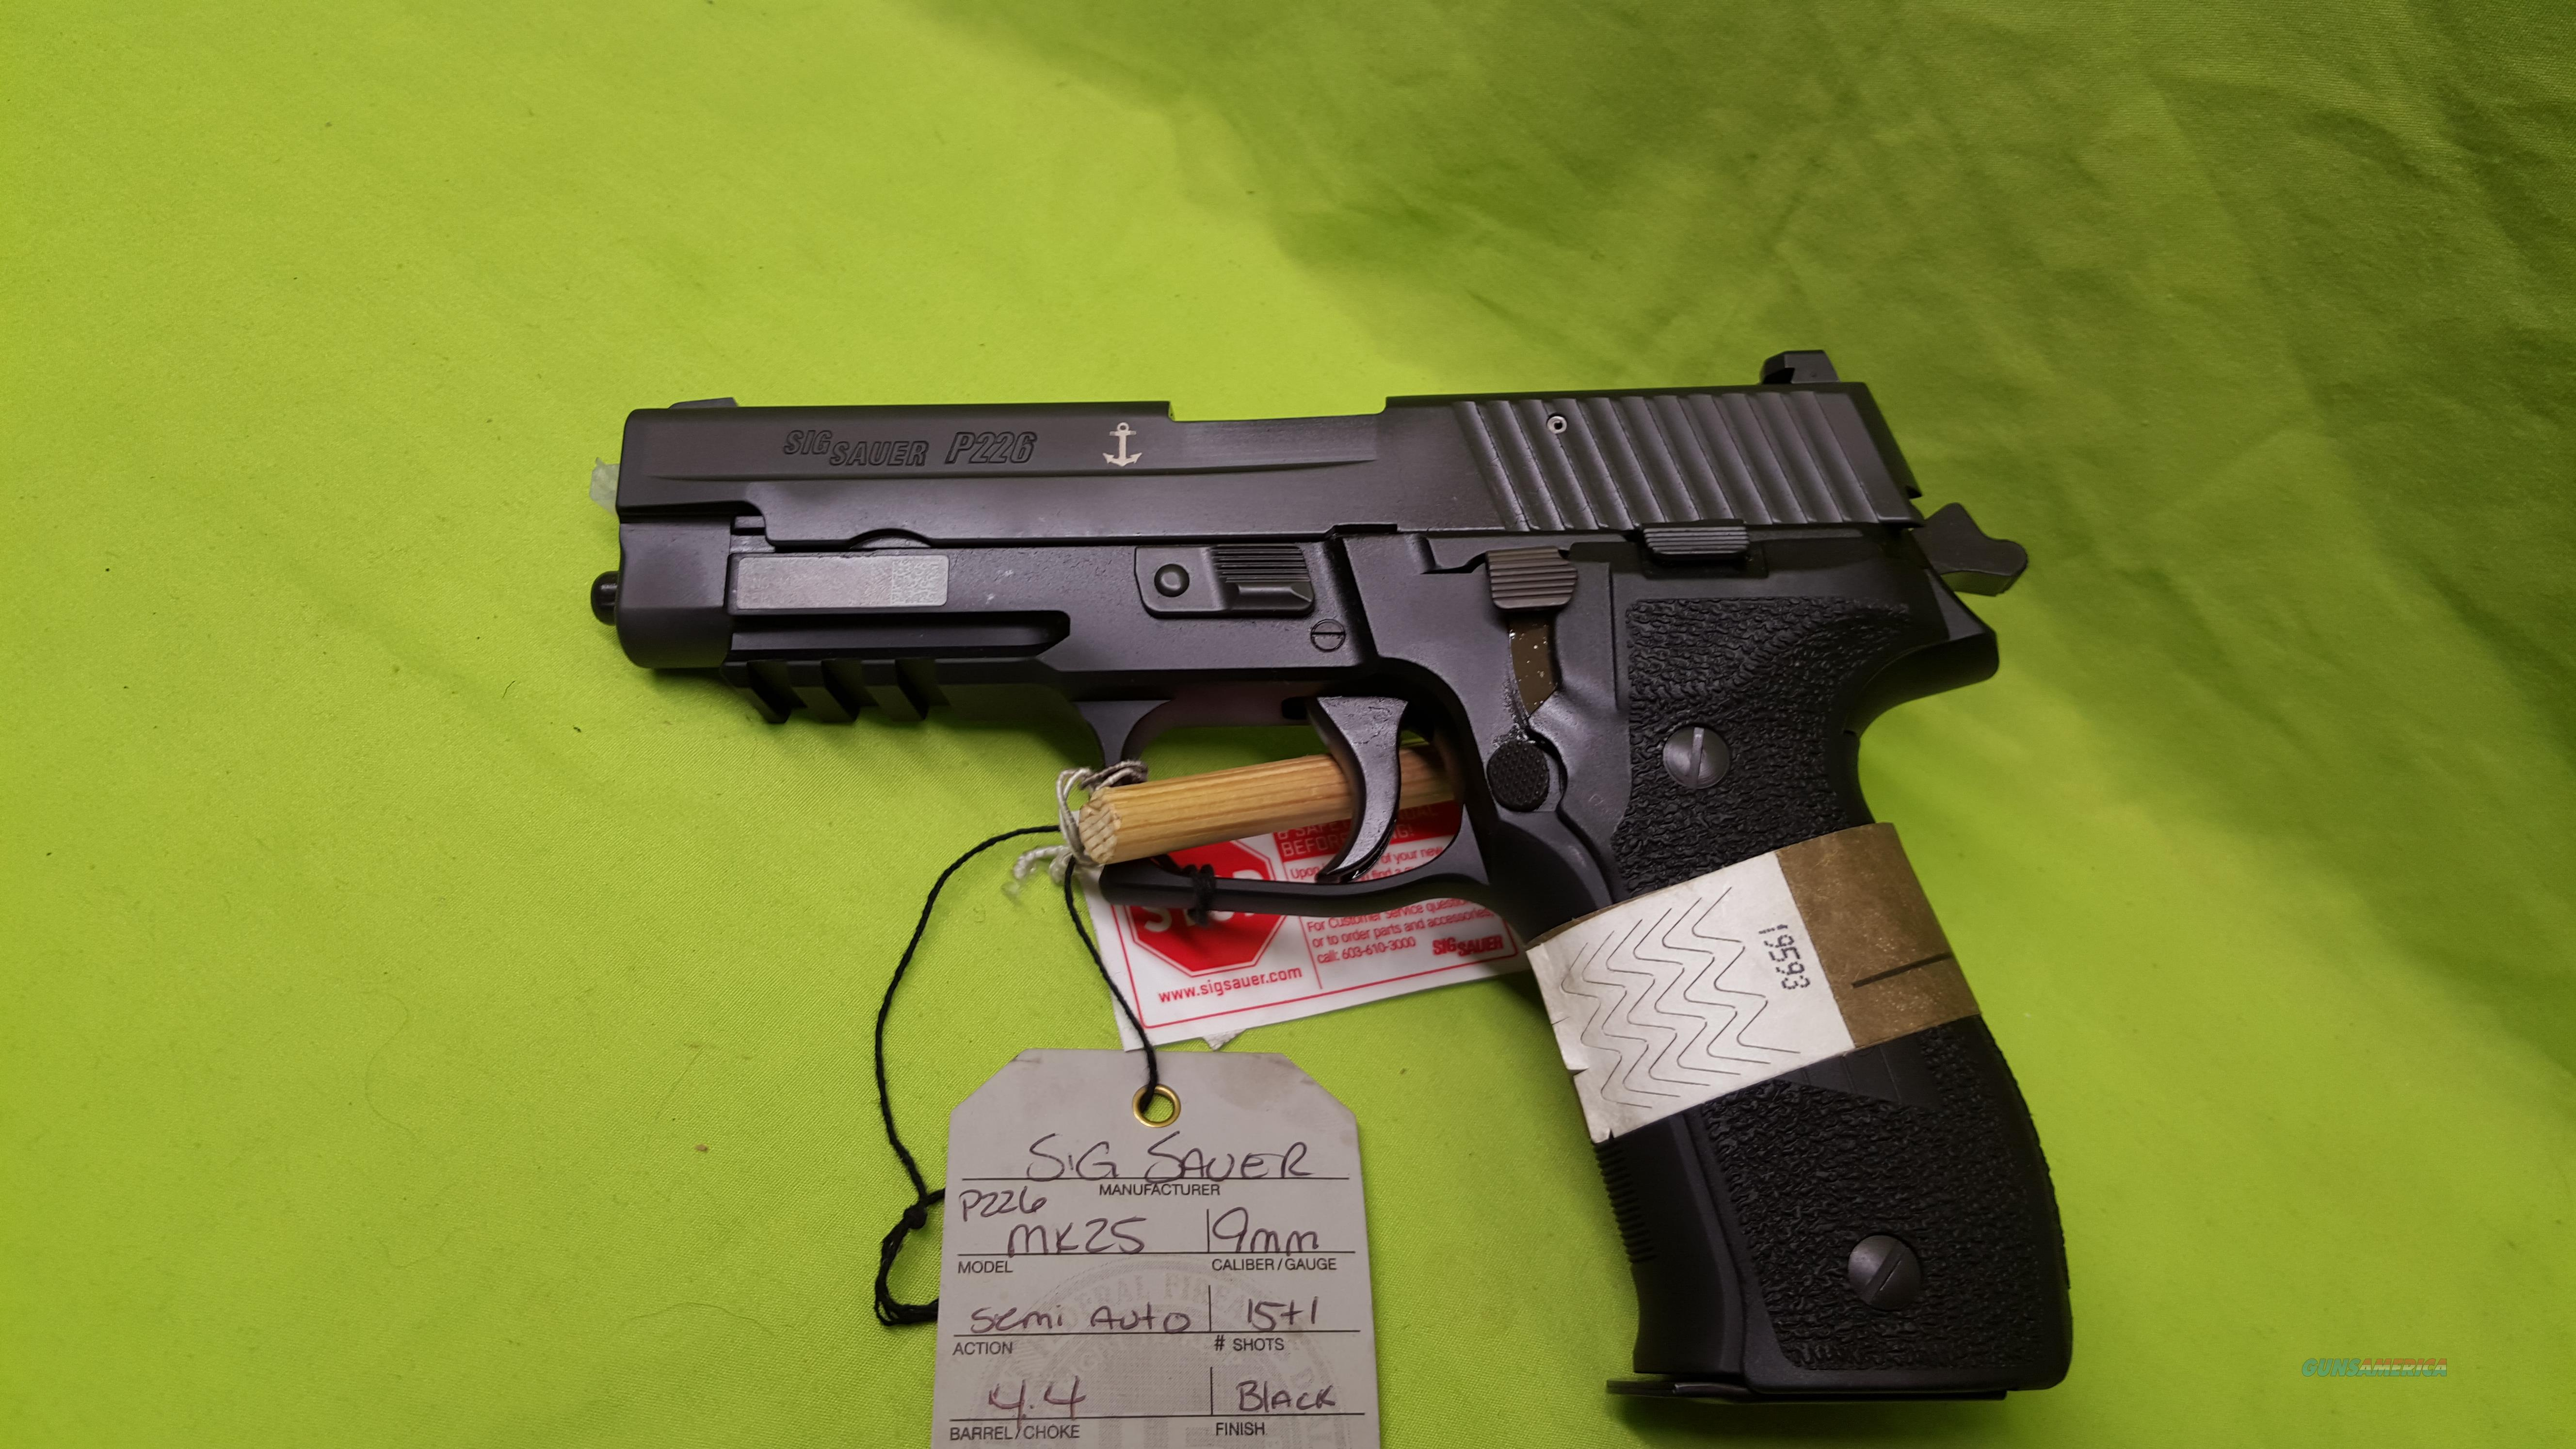 SIG SAUER P226 226 MK25 MK 25 9MM 9 MM 15RD 3MAGS  Guns > Pistols > Sig - Sauer/Sigarms Pistols > P226